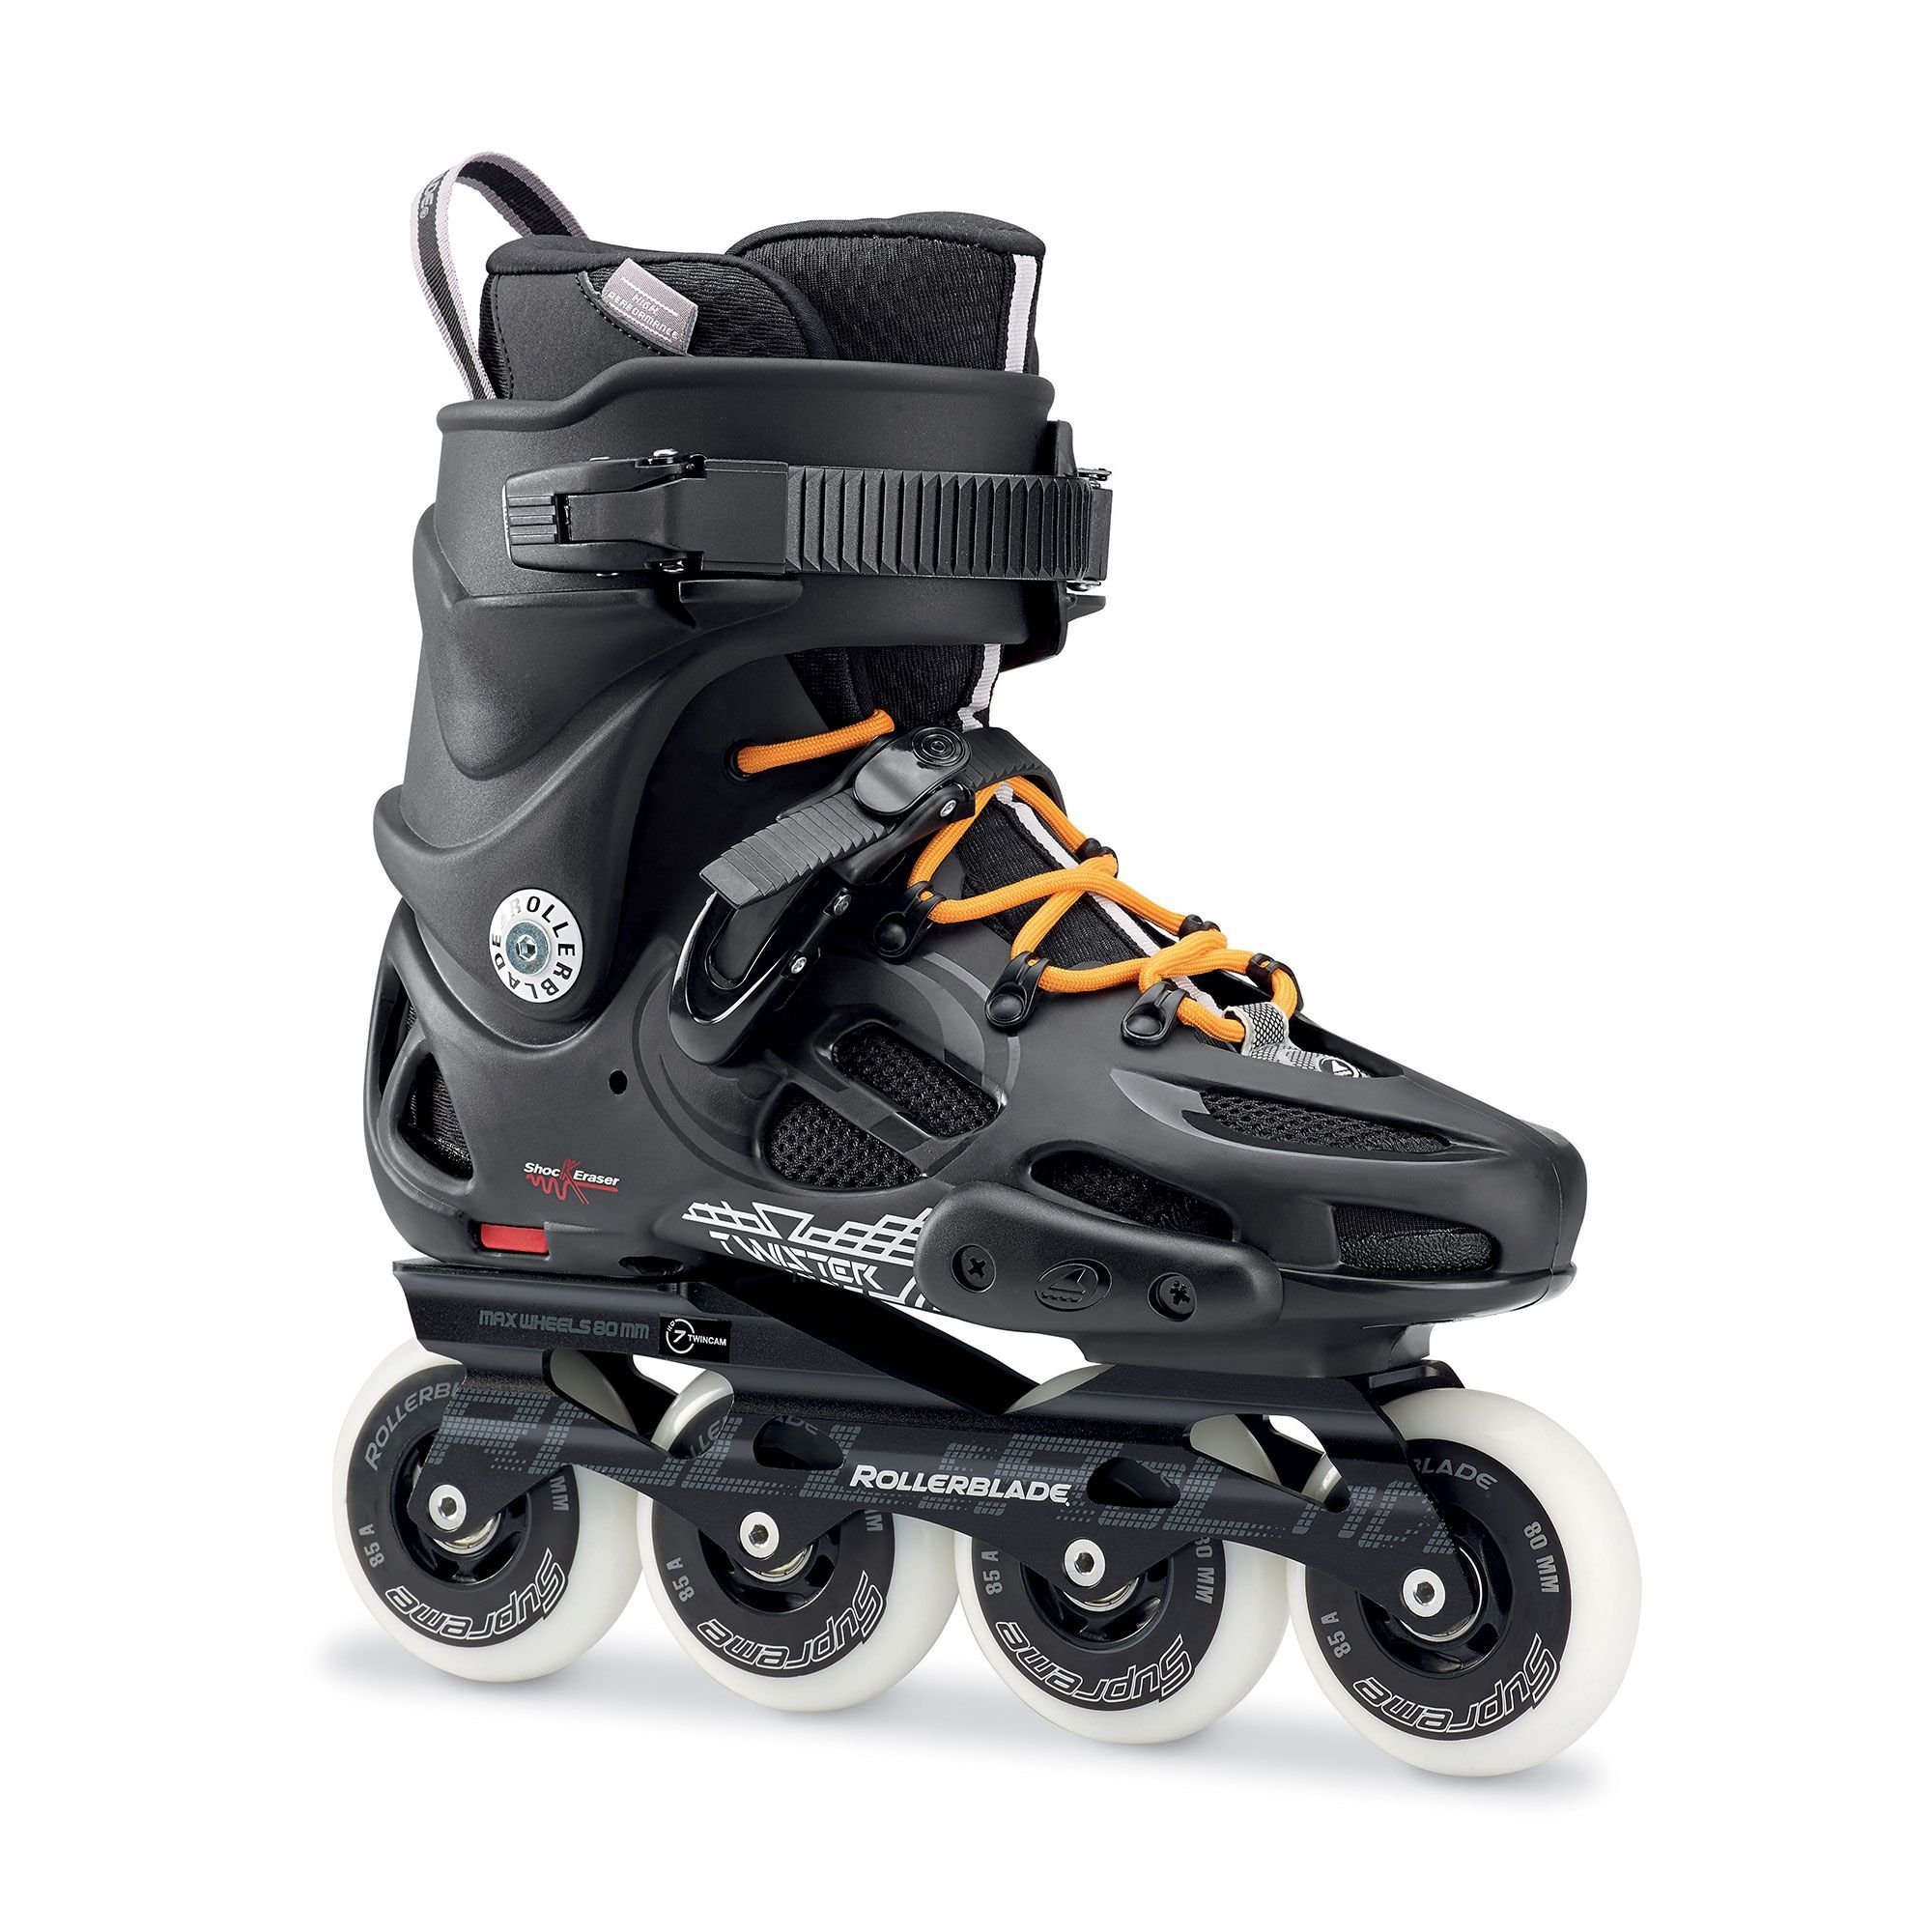 Rollerblade Men's Twister 80 Skates Black 28.5 & Headband Bundle